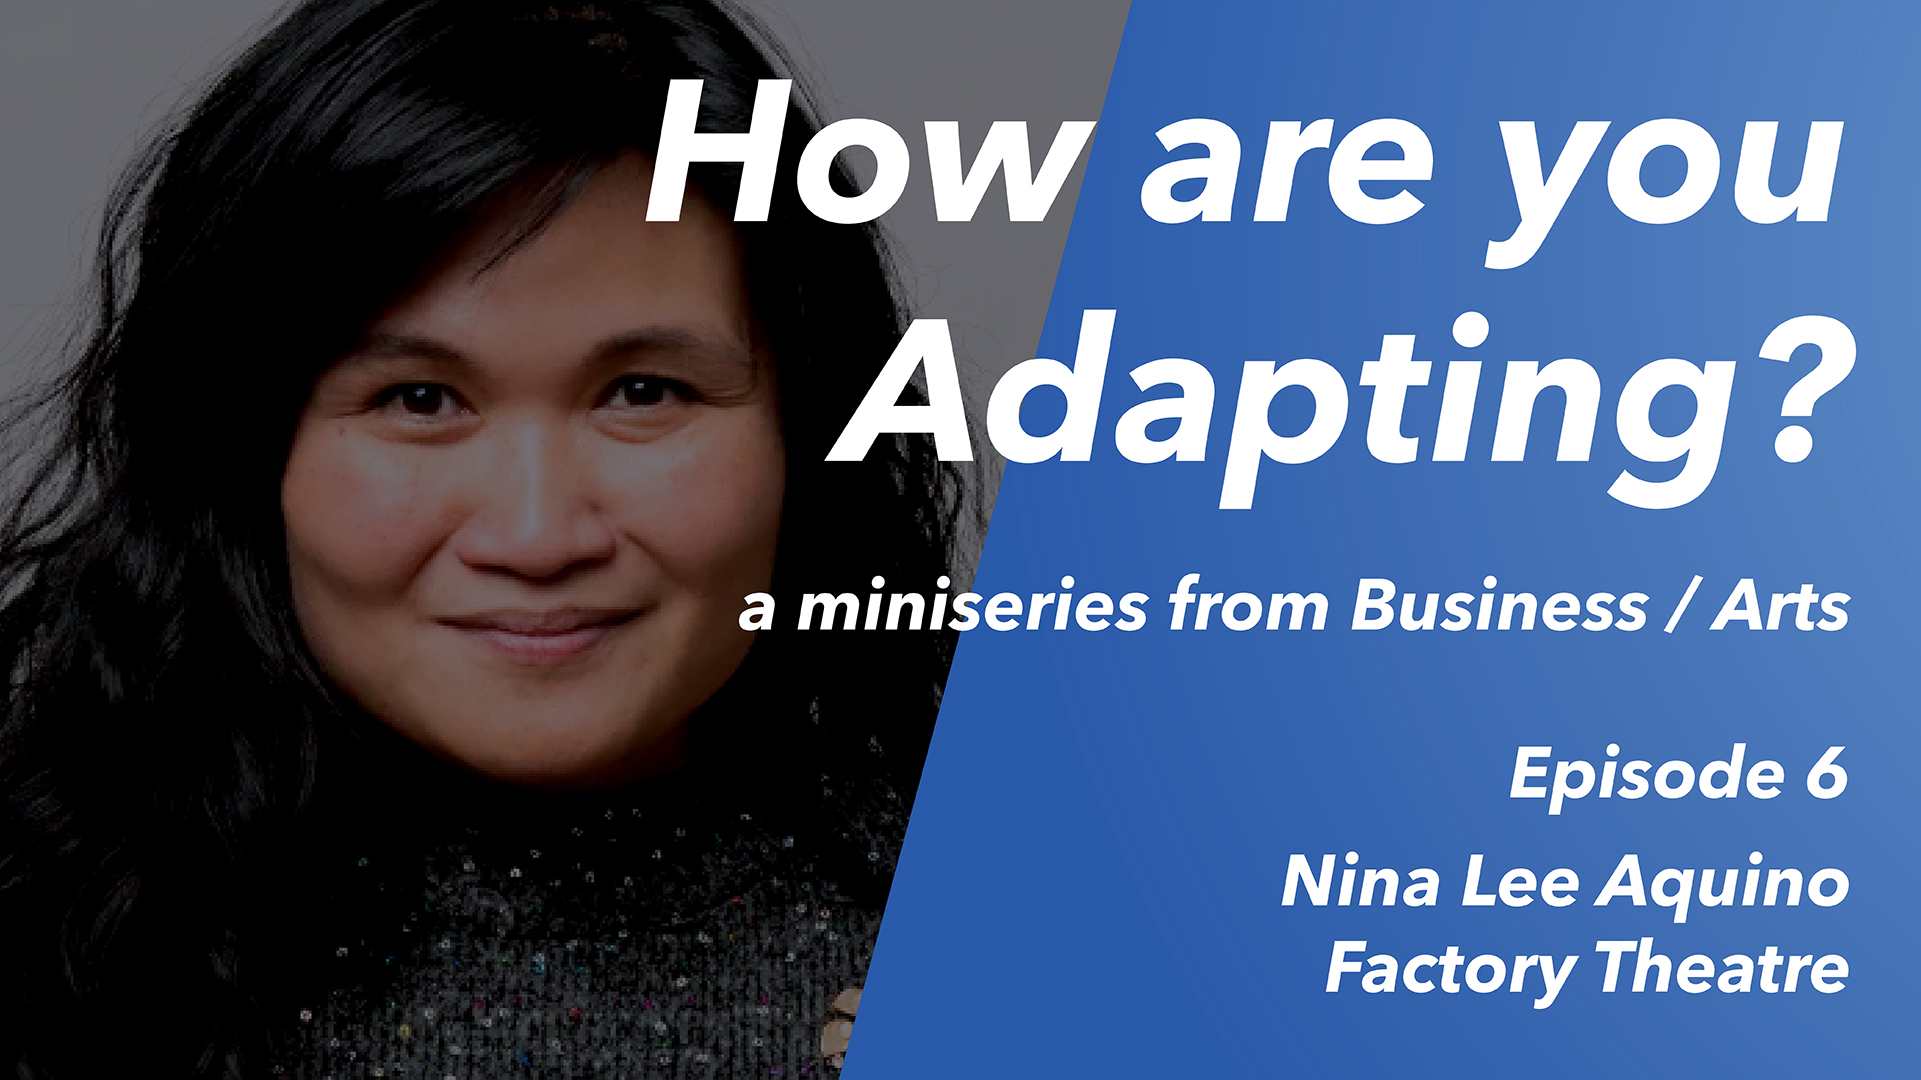 How are you Adapting? Ep 6: Nina Lee Aquino (Factory Theatre)